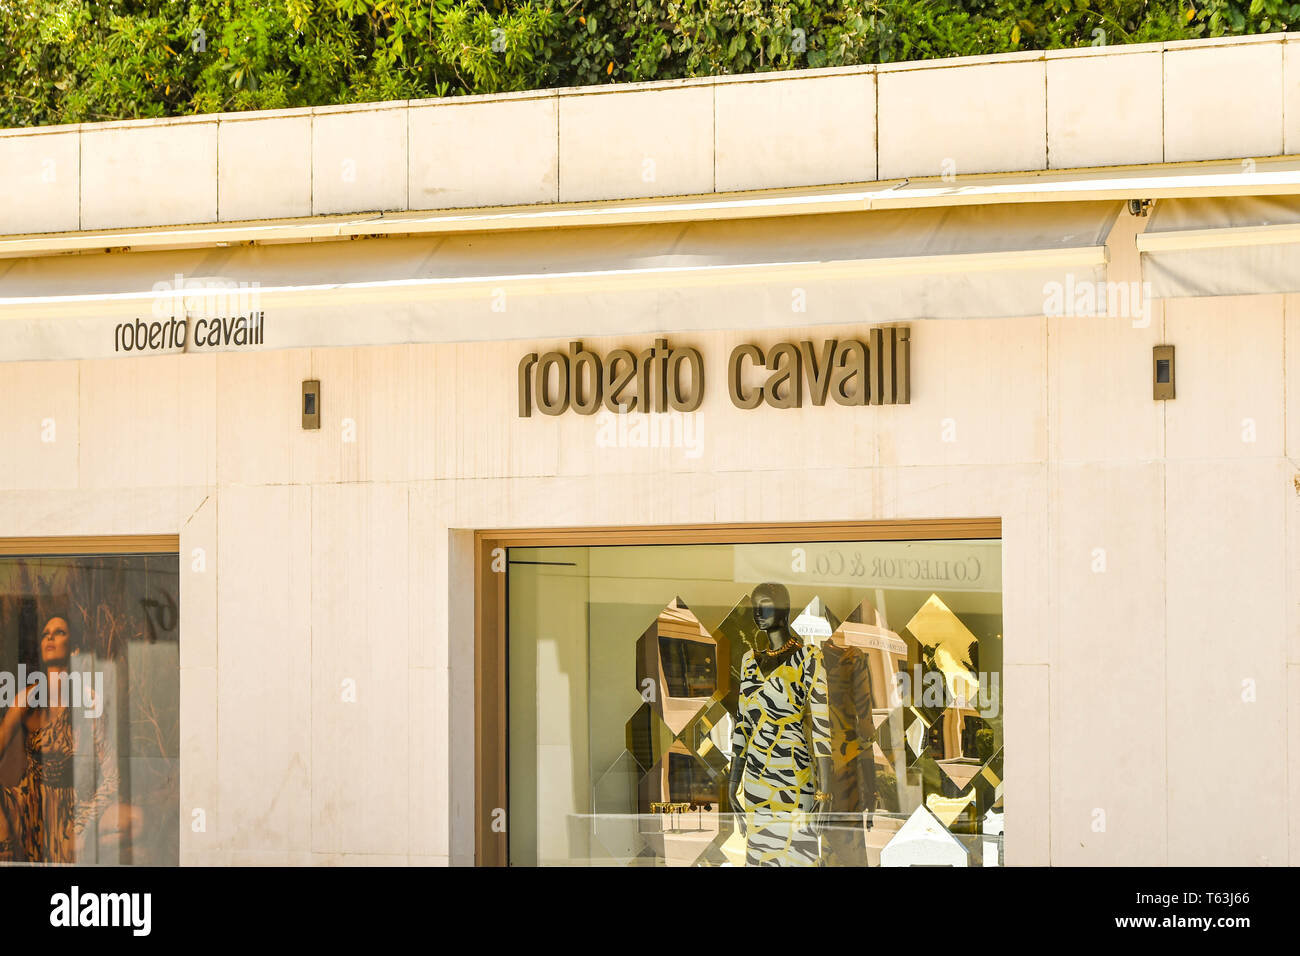 CANNES, FRANCE - APRIL 2019: Exterior of the Roberto Cavalli store on the seafront in Cannes. It is a well known designer brand. Stock Photo